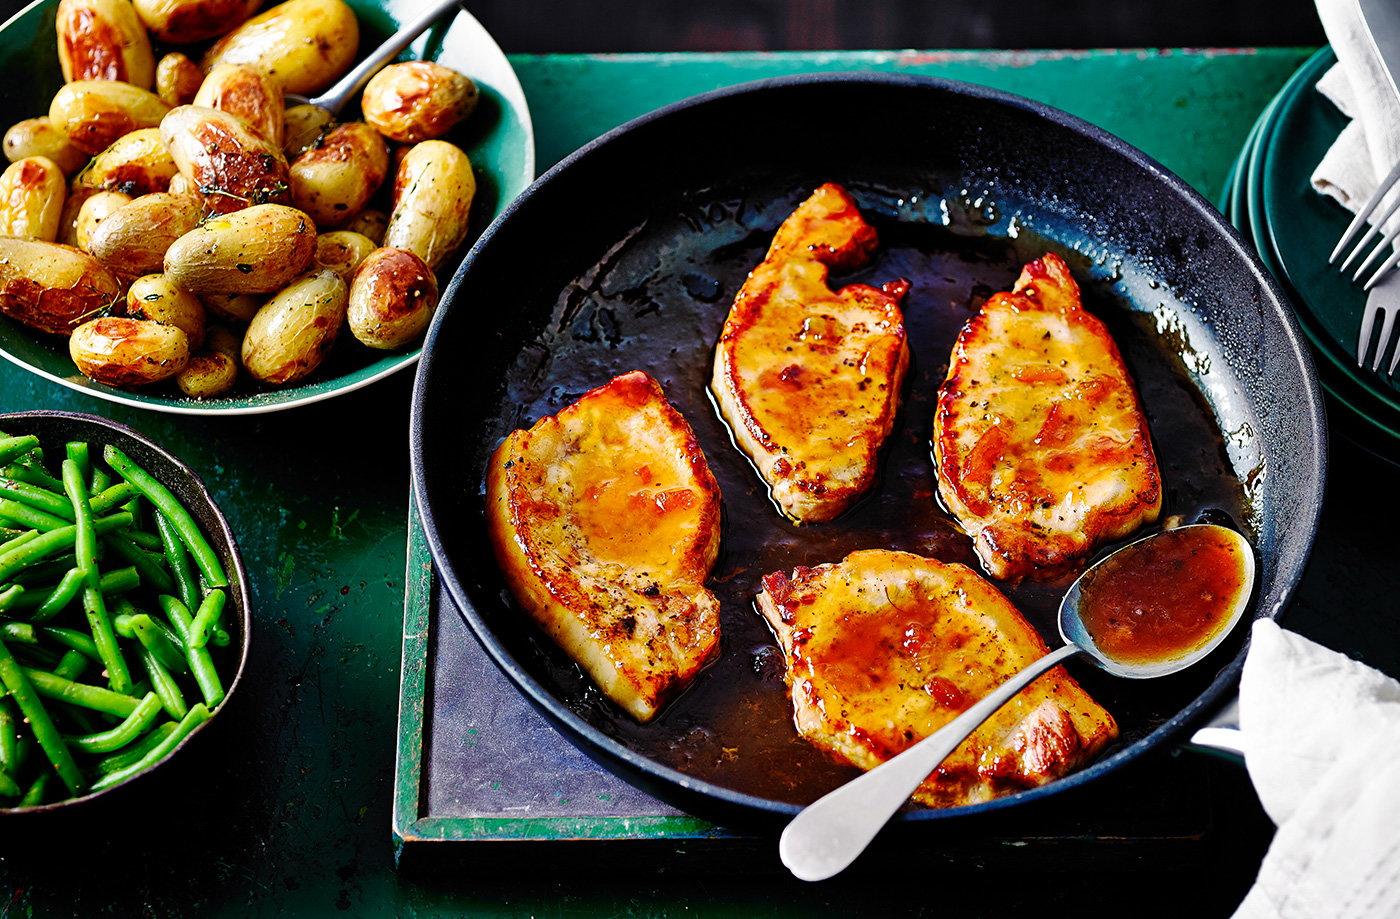 Marmalade pork with thyme-roasted baby potatoes  recipe